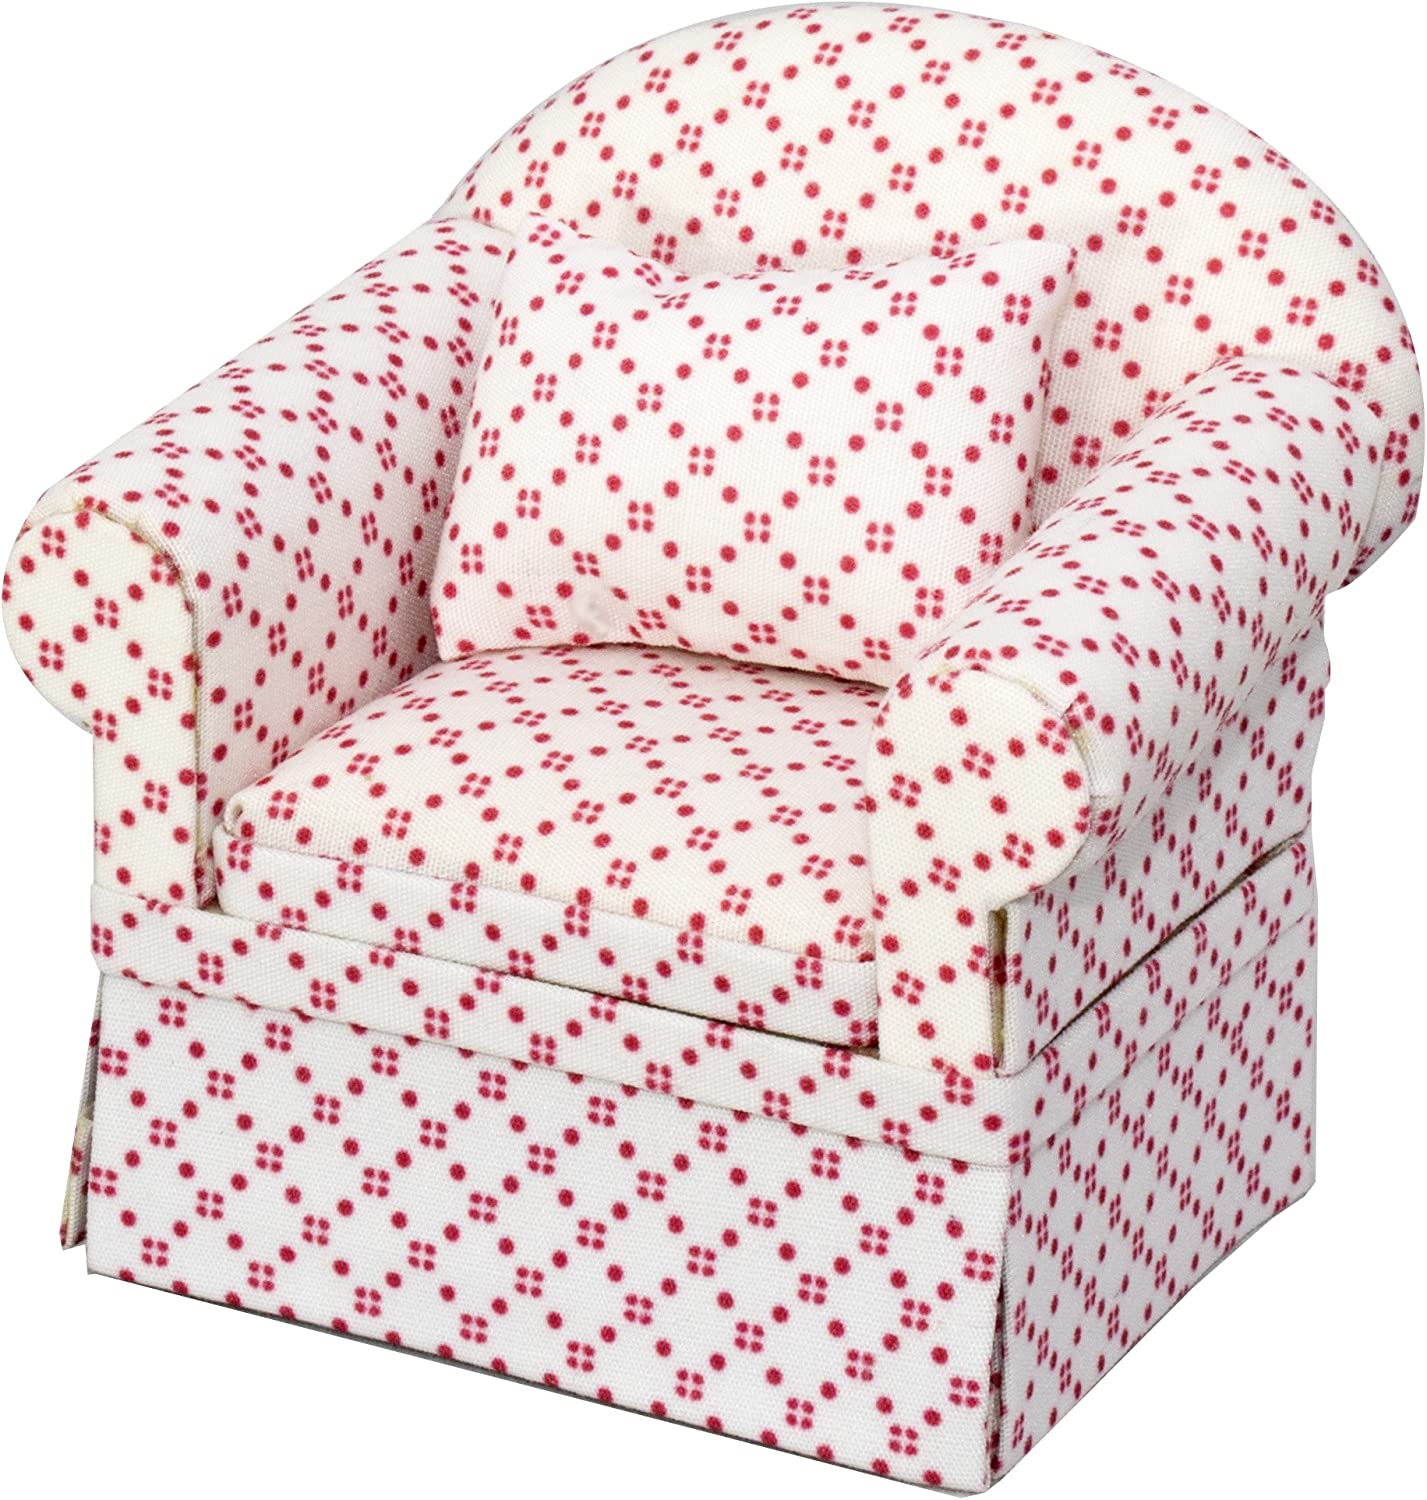 Inusitus Miniature Dollhouse Sofa Arm Chair - Dolls House Furniture Couch - White with Red Pattern - 1/12 Scale (White Red Dots)